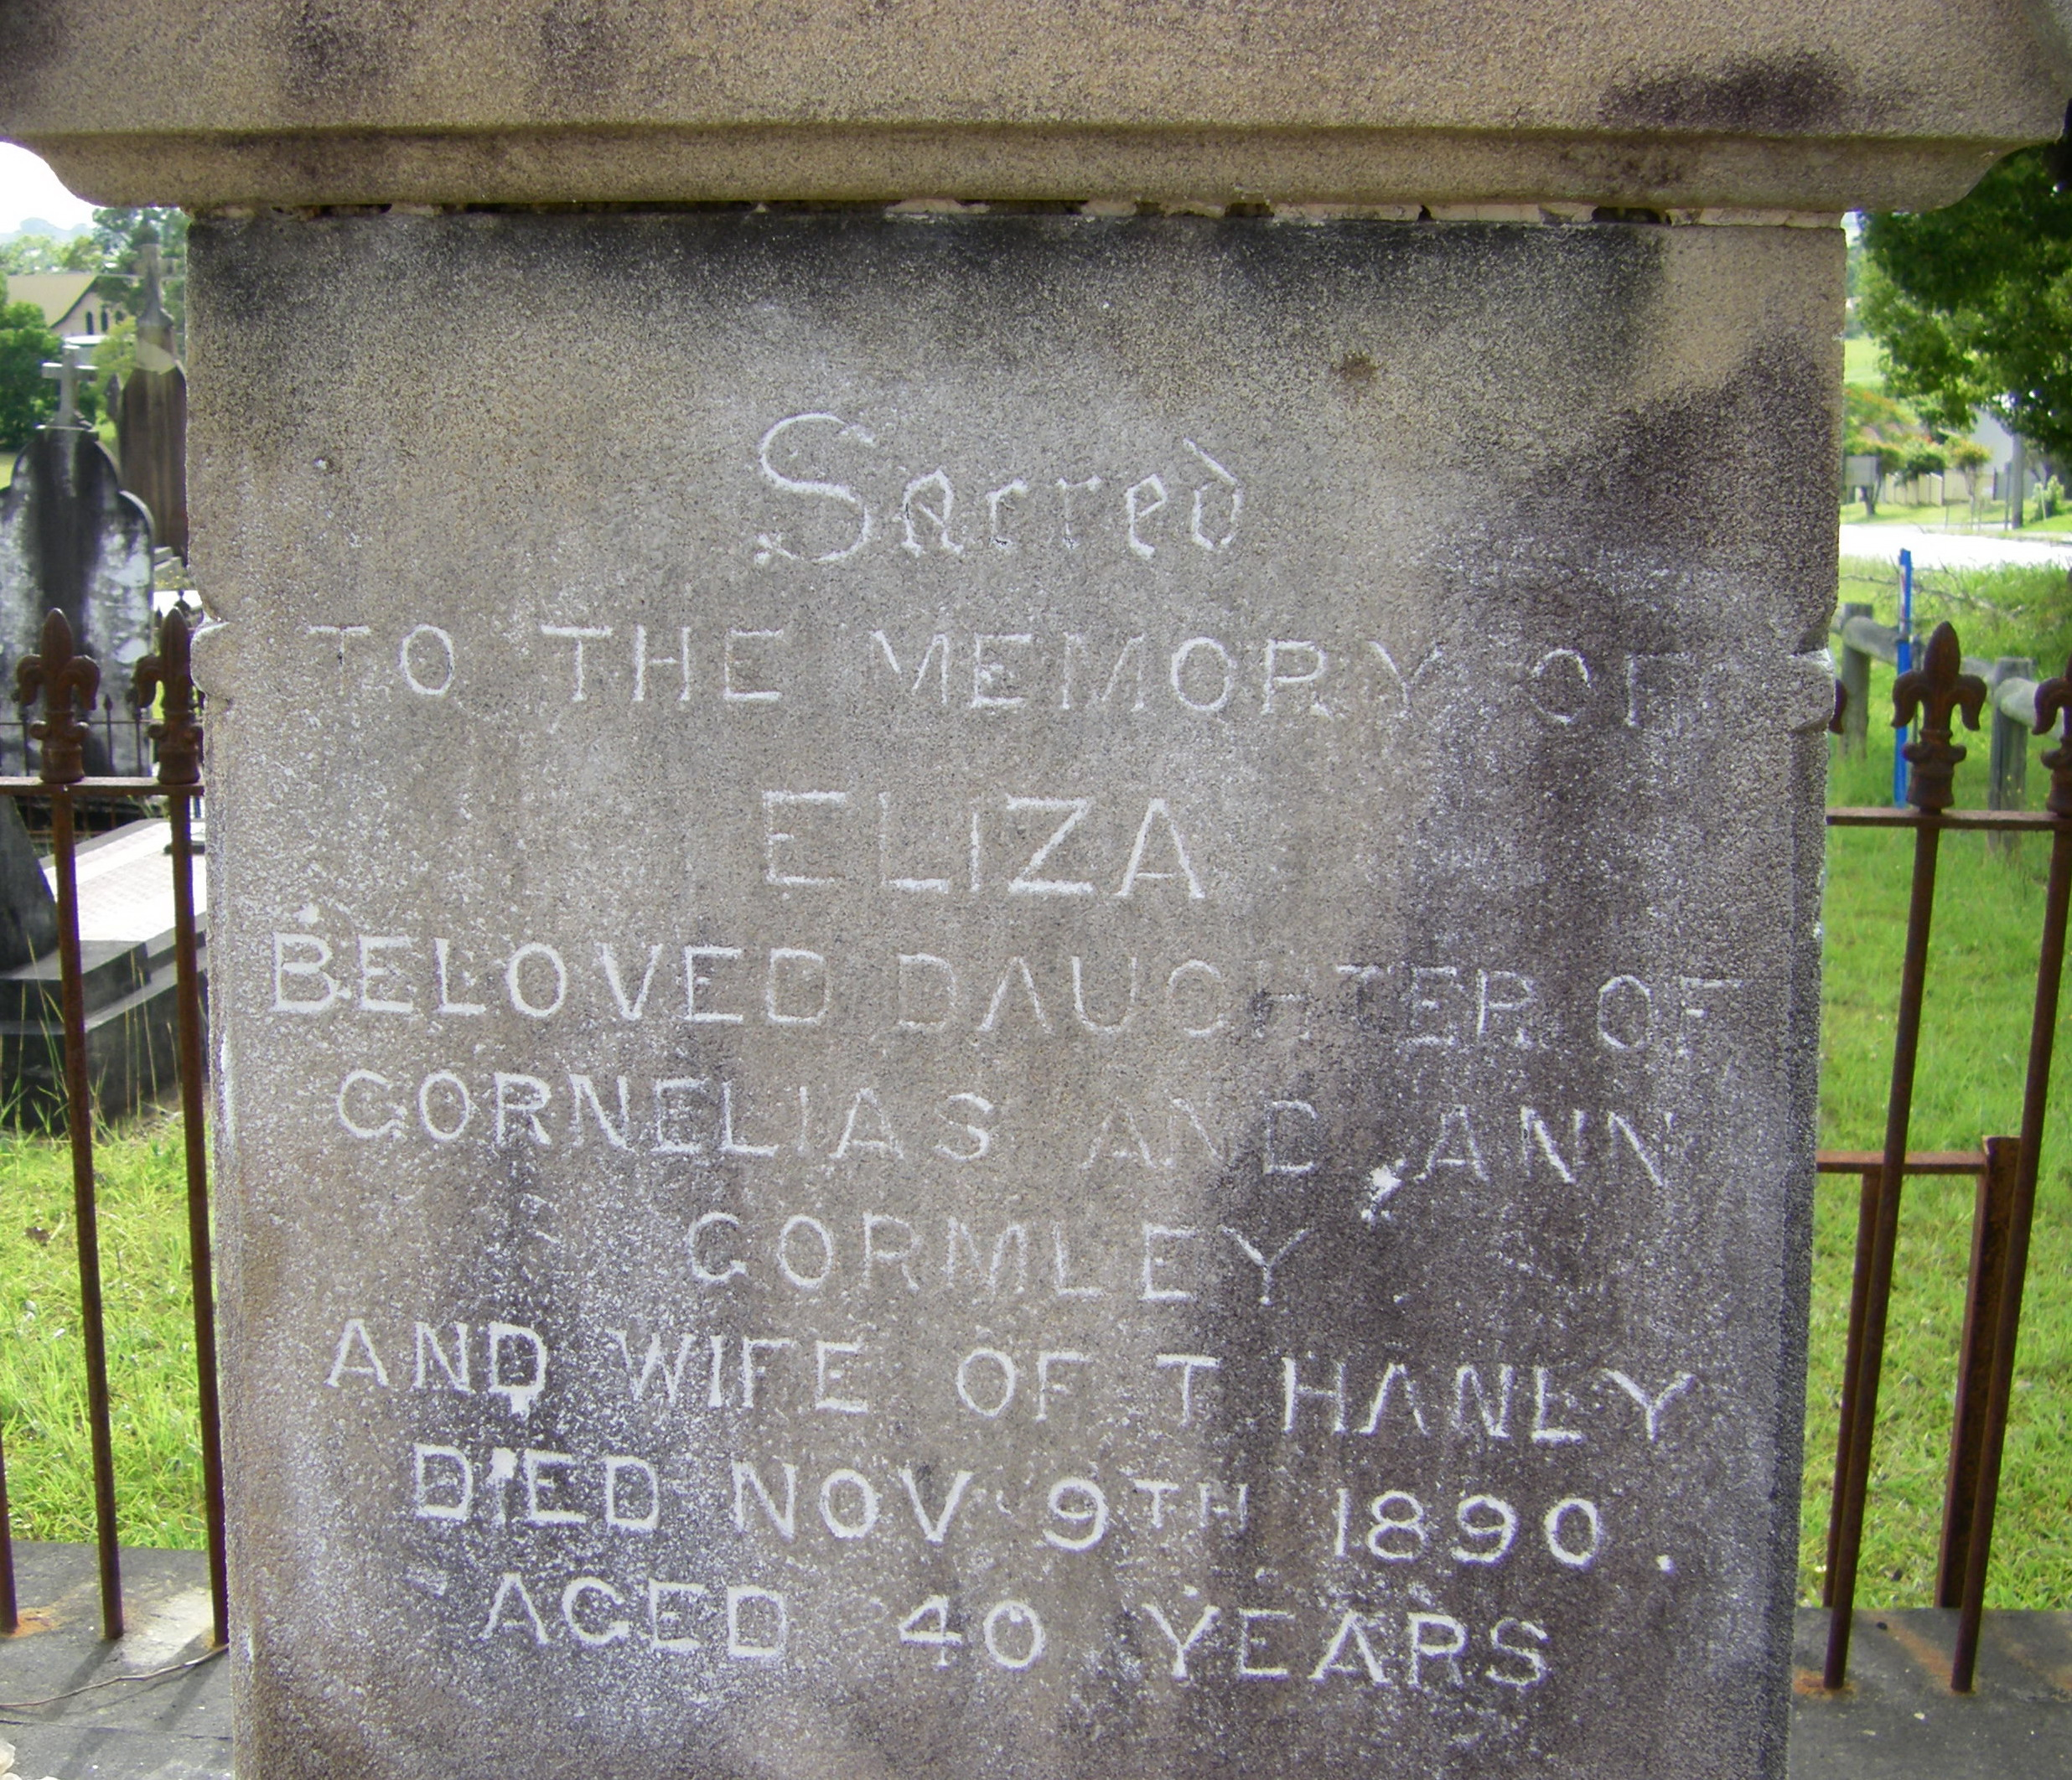 Gravestone of Eliza Hanley nee Gormley